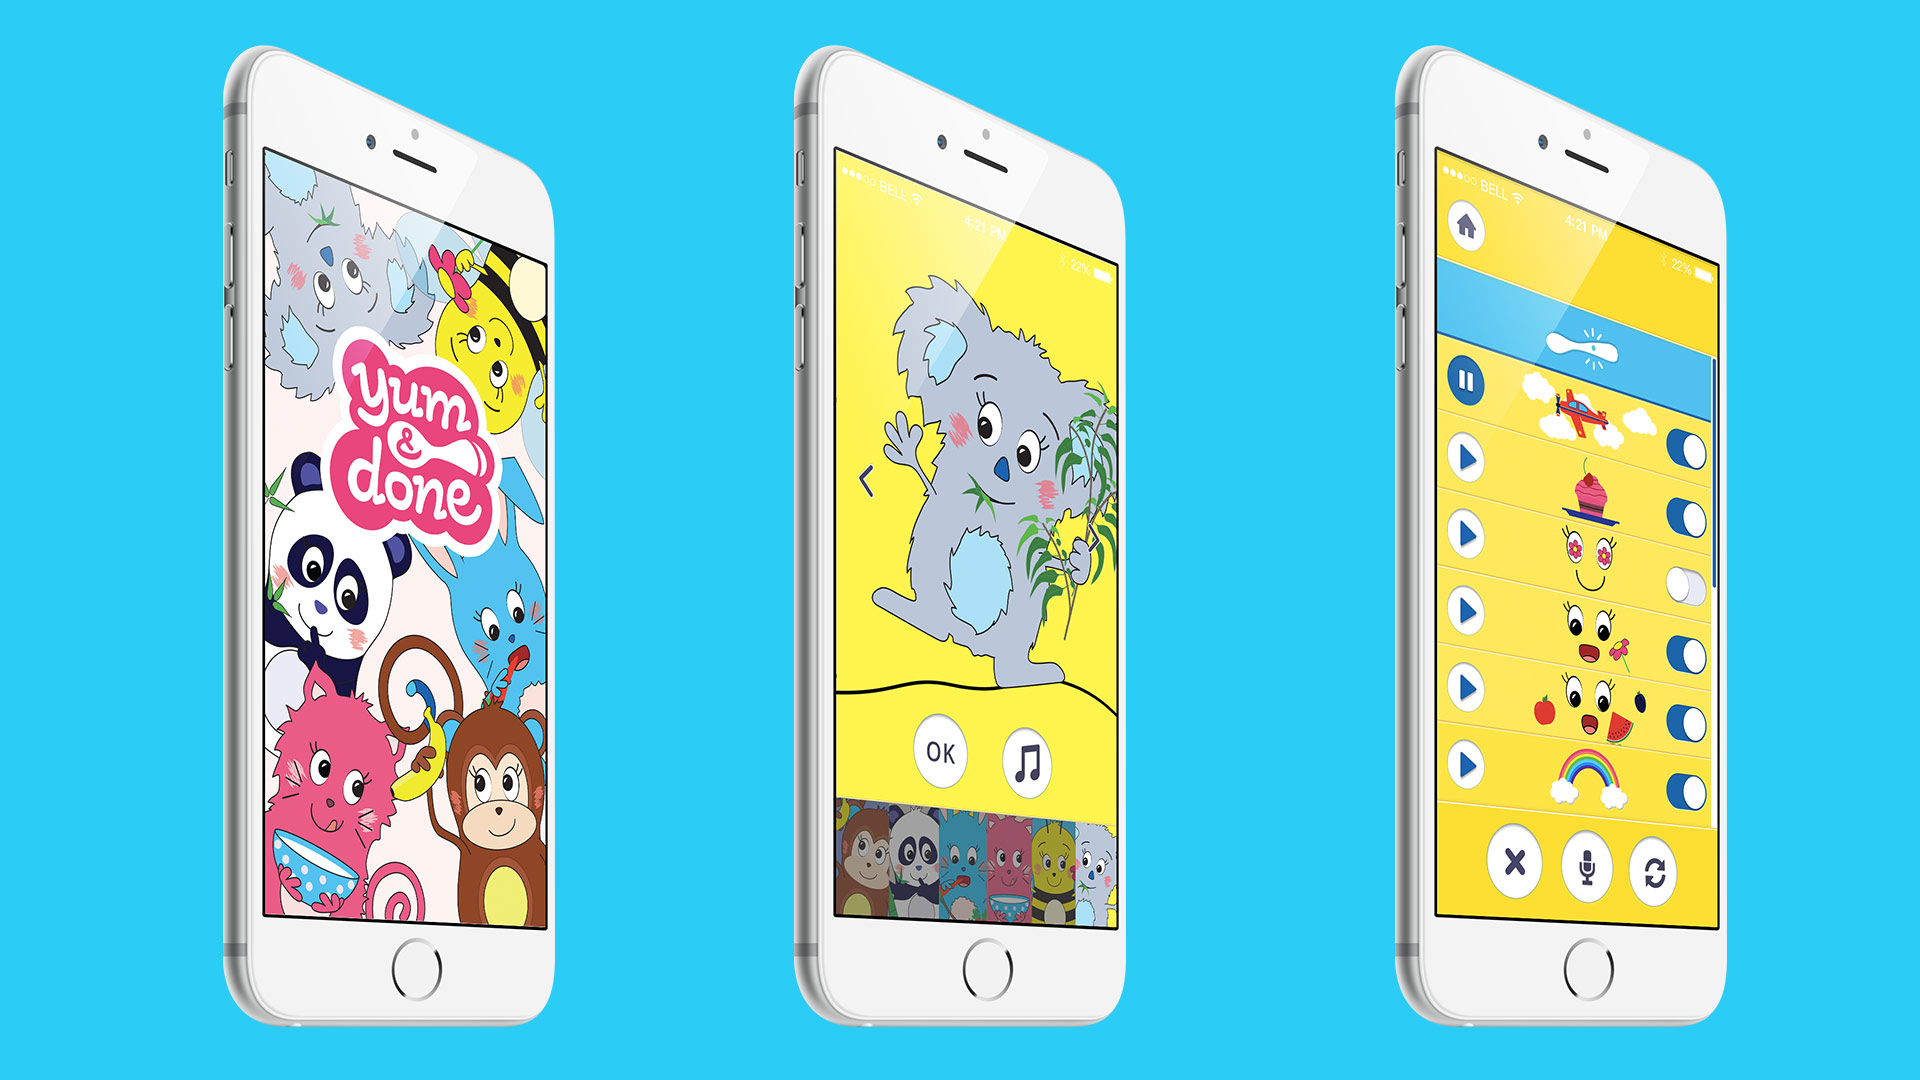 Children's App Design